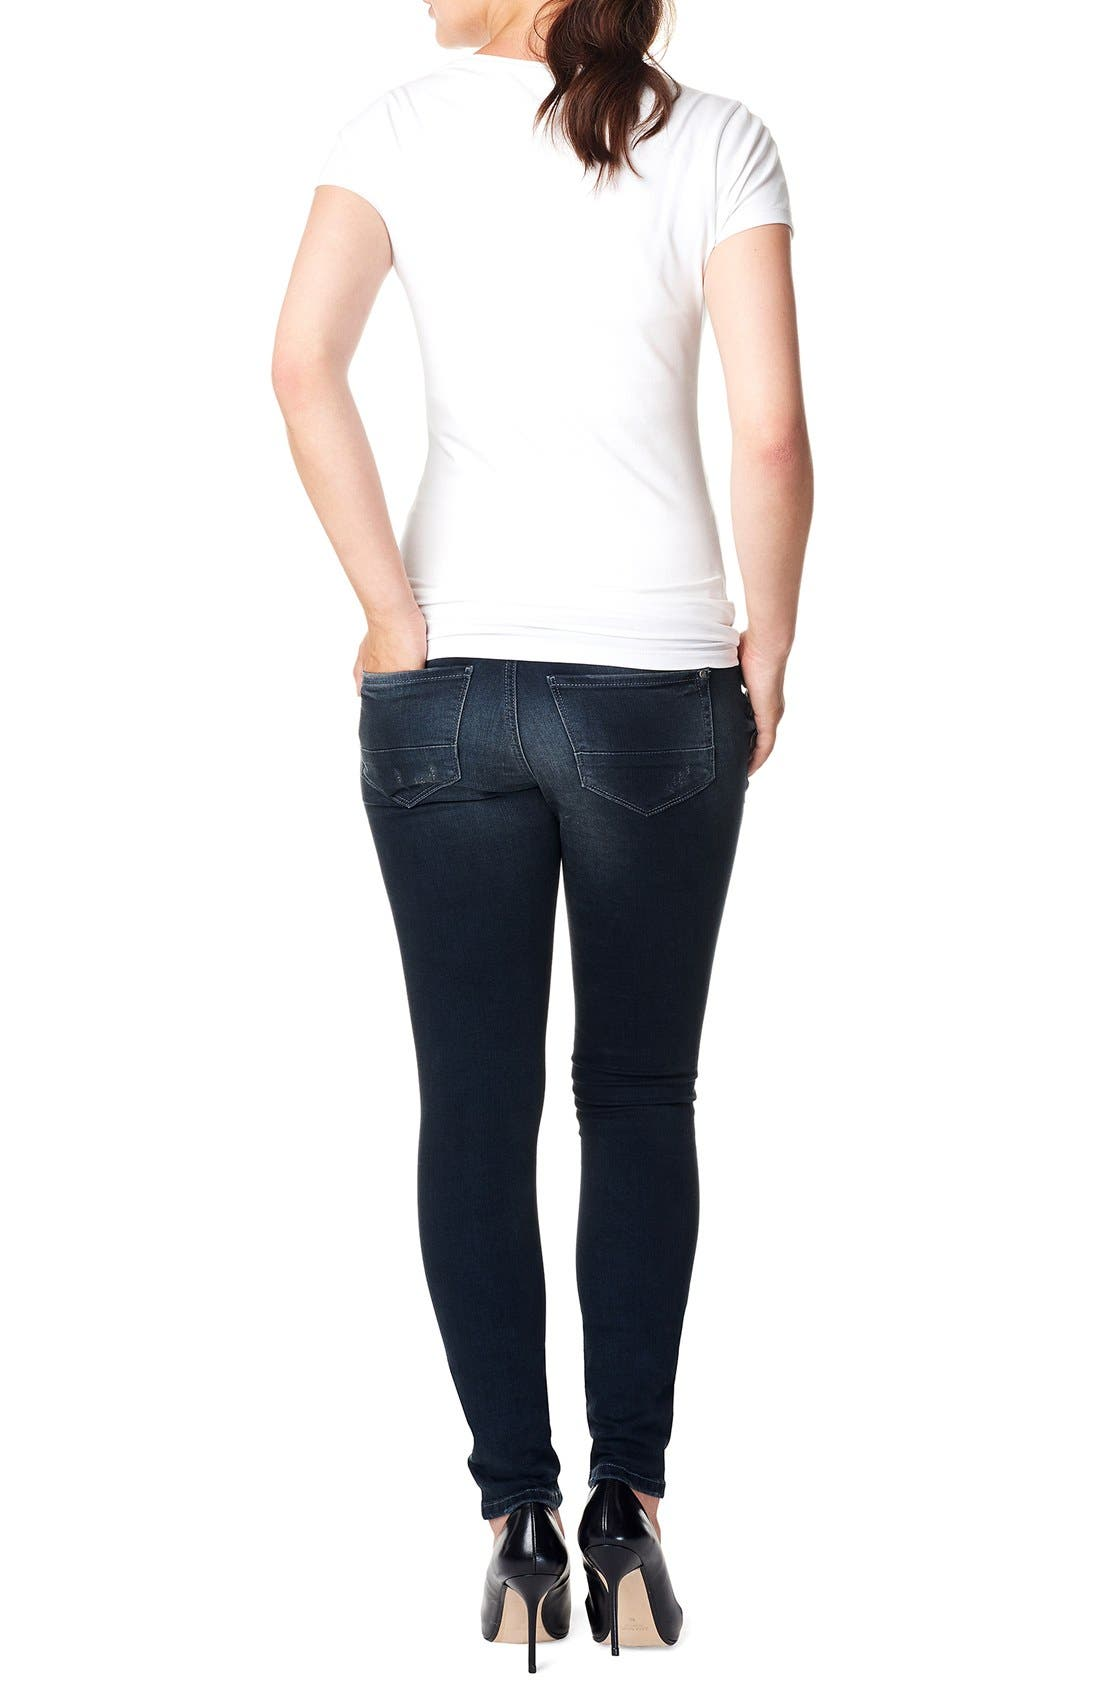 NOPPIES,                             'Britt' Over the Belly Skinny Maternity Jeans,                             Alternate thumbnail 2, color,                             DARK STONE WASH